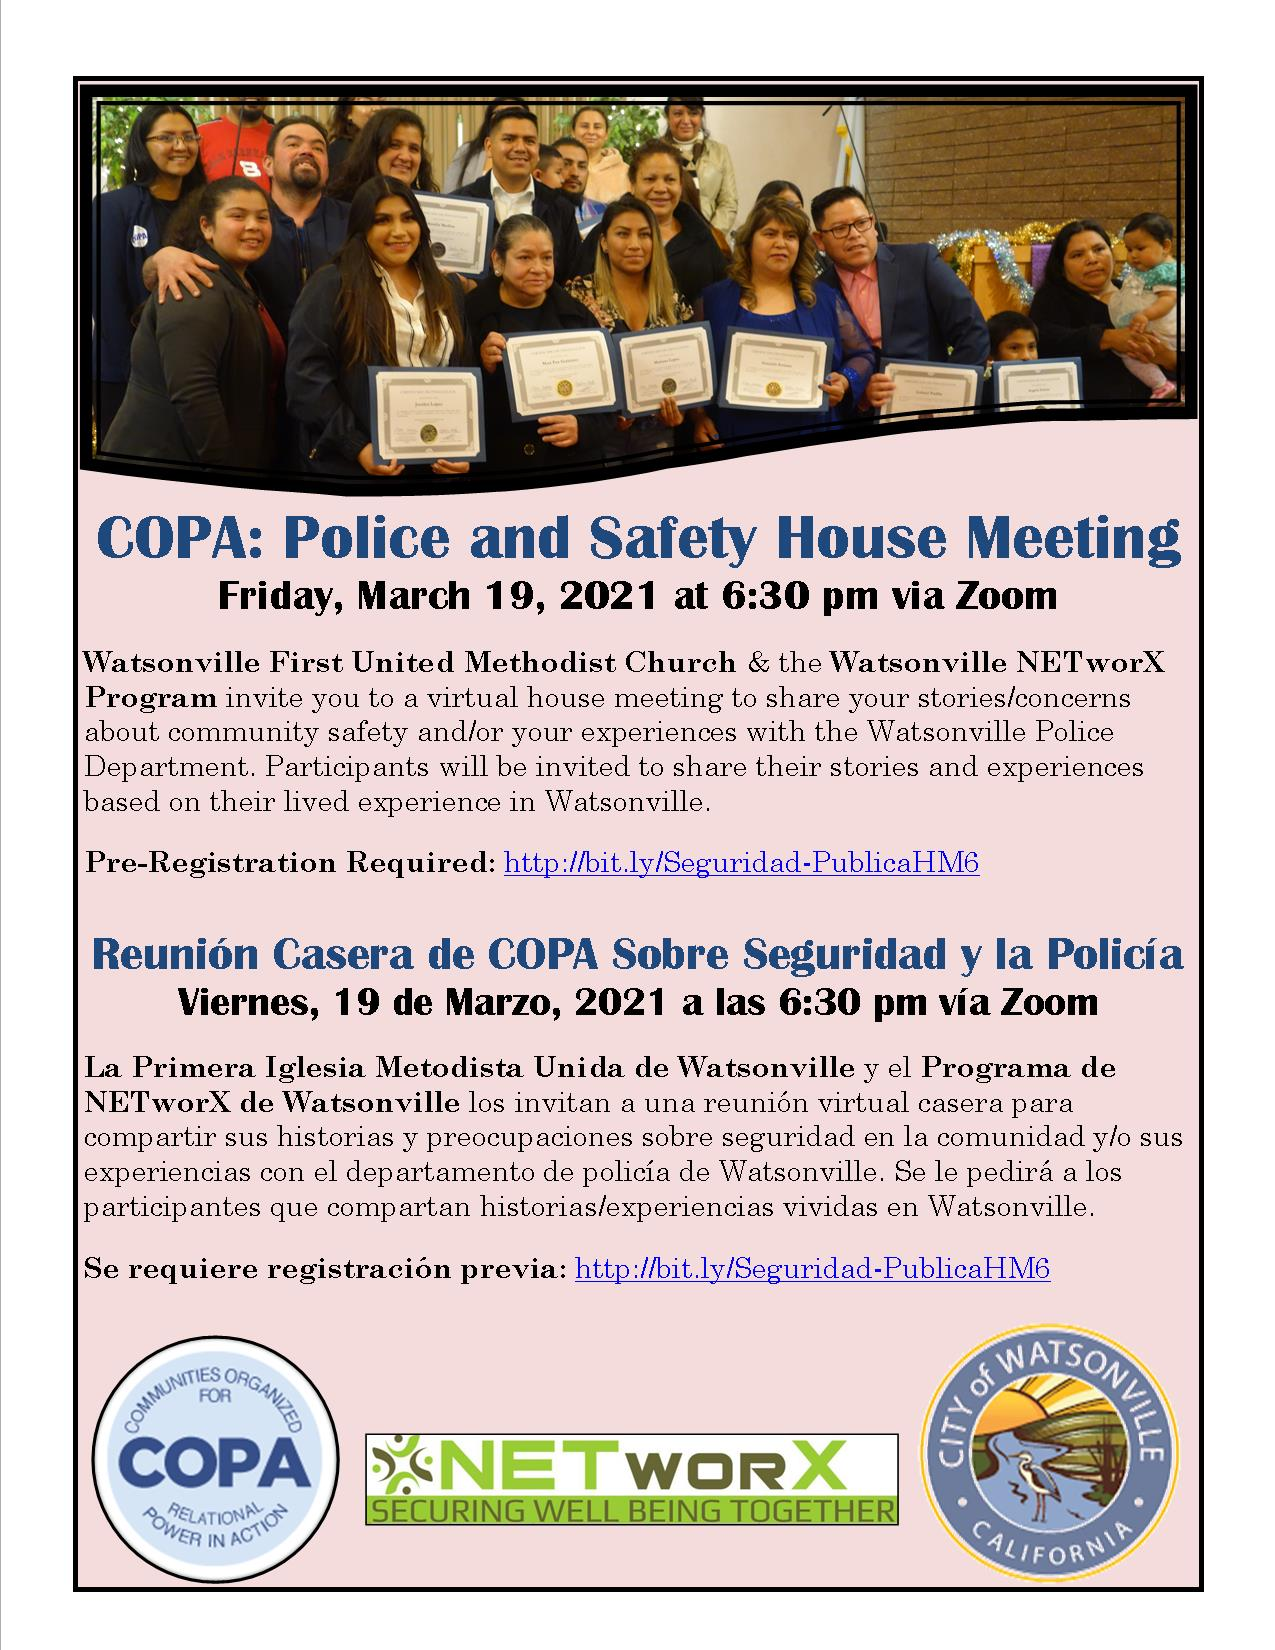 COPA Police and Safety House Meeting